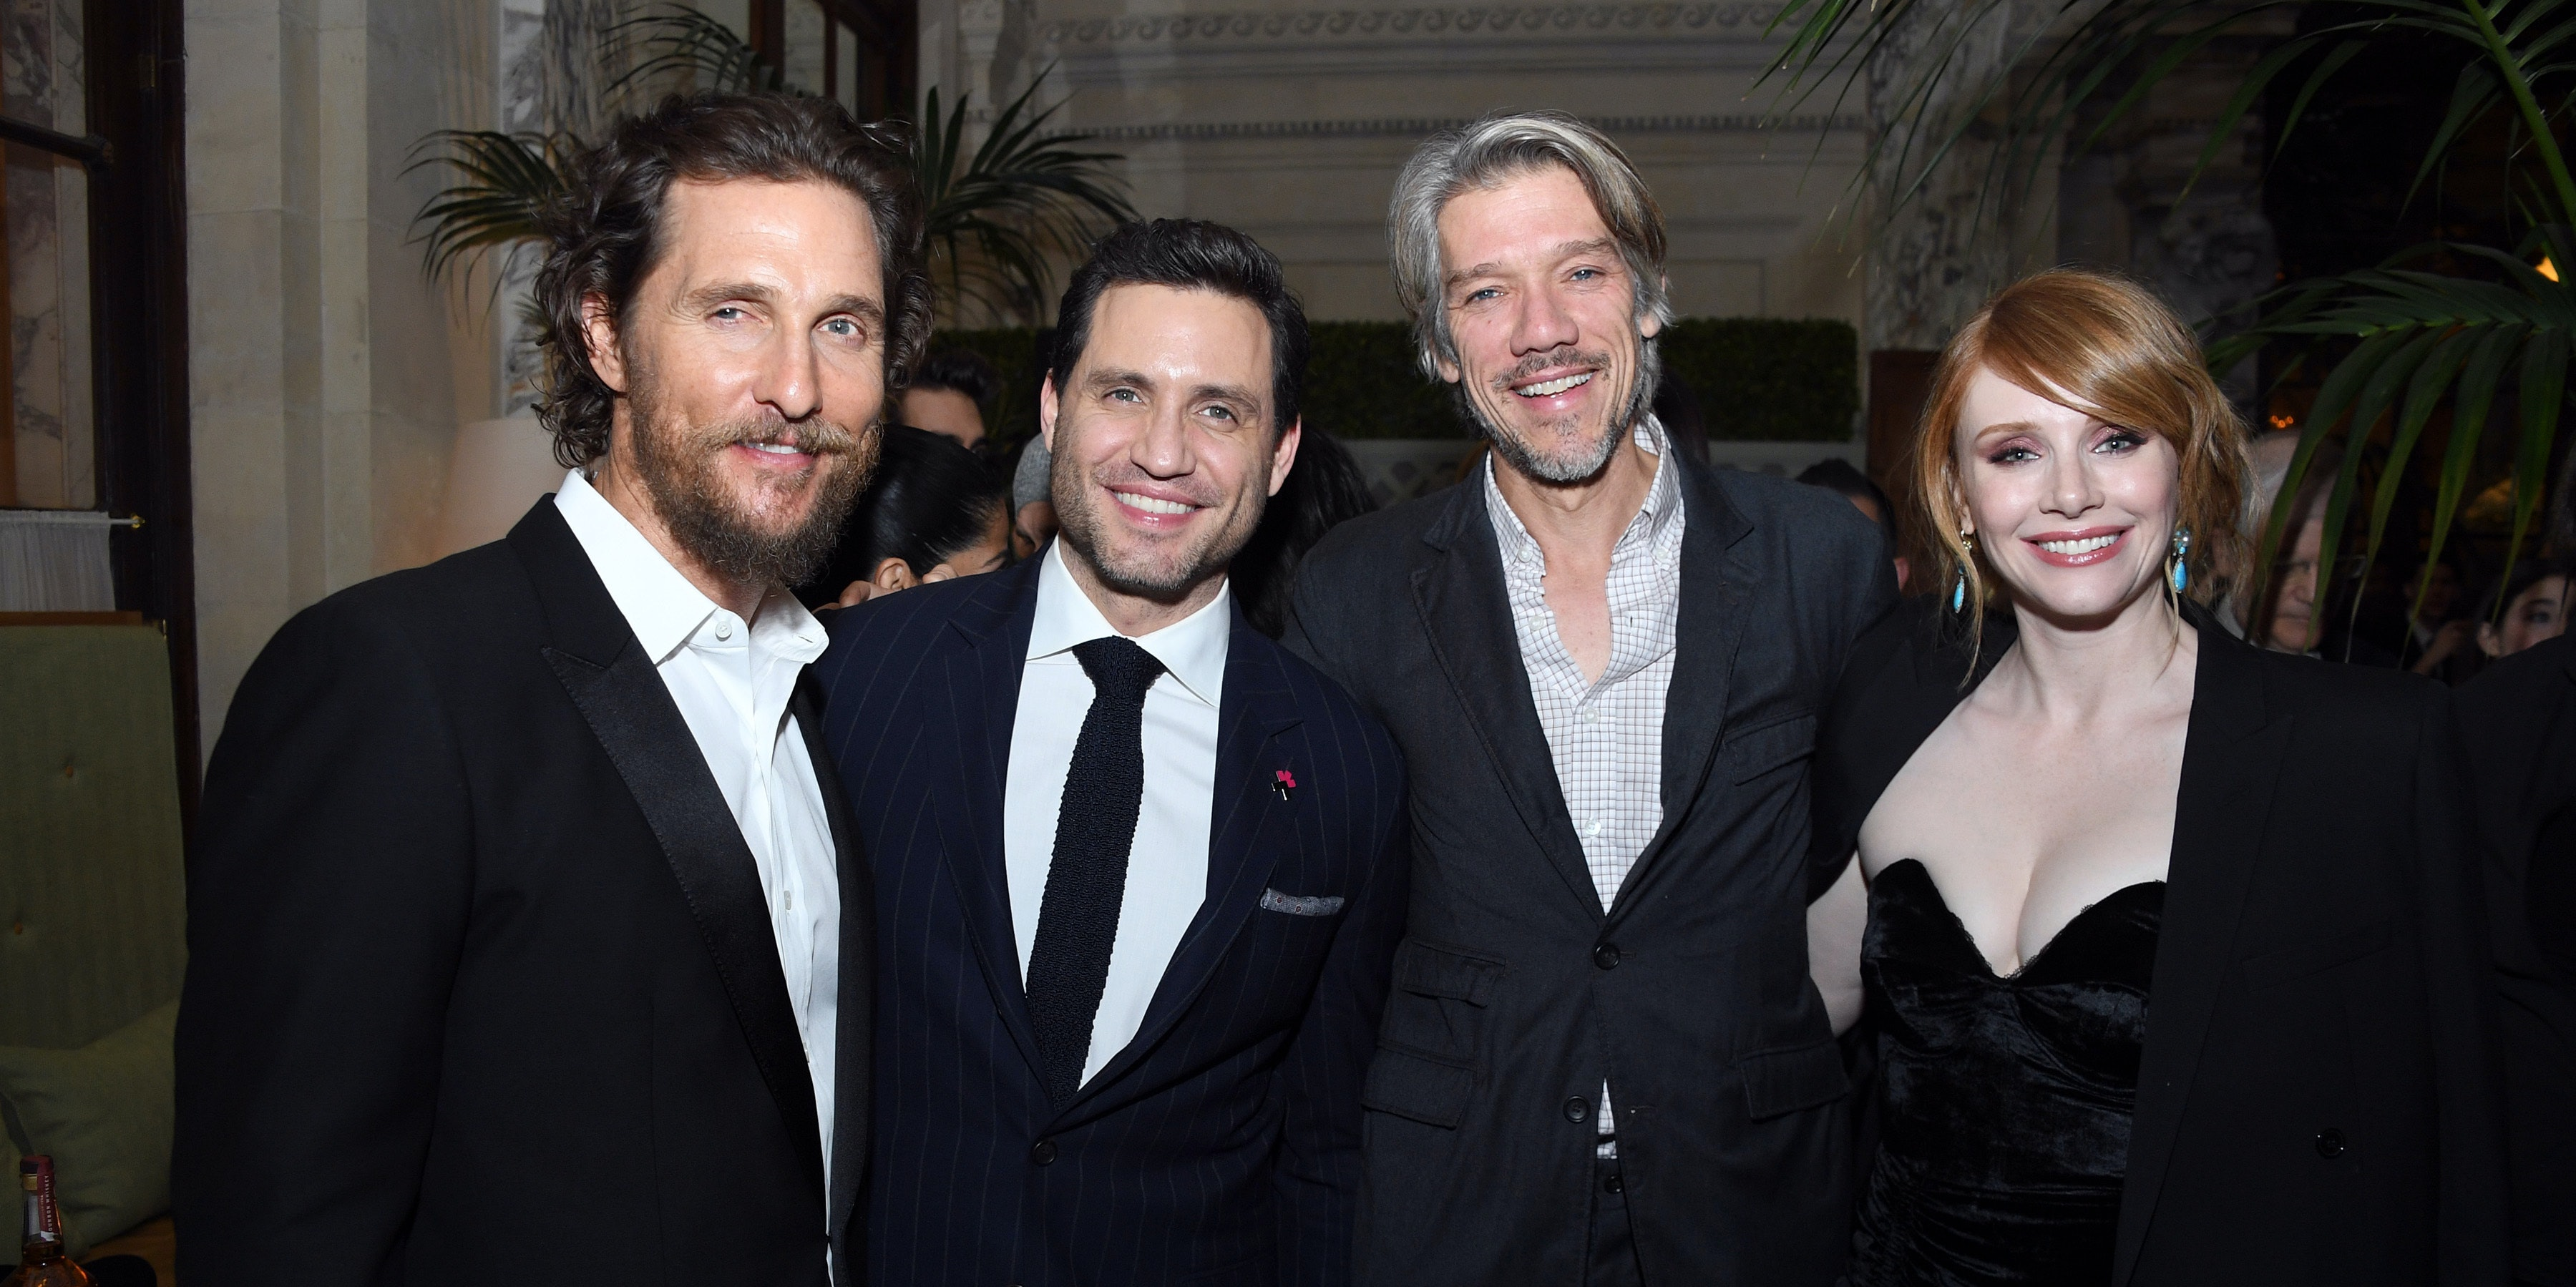 NEW YORK, NY - JANUARY 17:  Actors Matthew McConaughey and Edgar Ramirez; Director Stephen Gaghan; and Actress Bryce Dallas Howard attend the the world premiere of 'Gold'